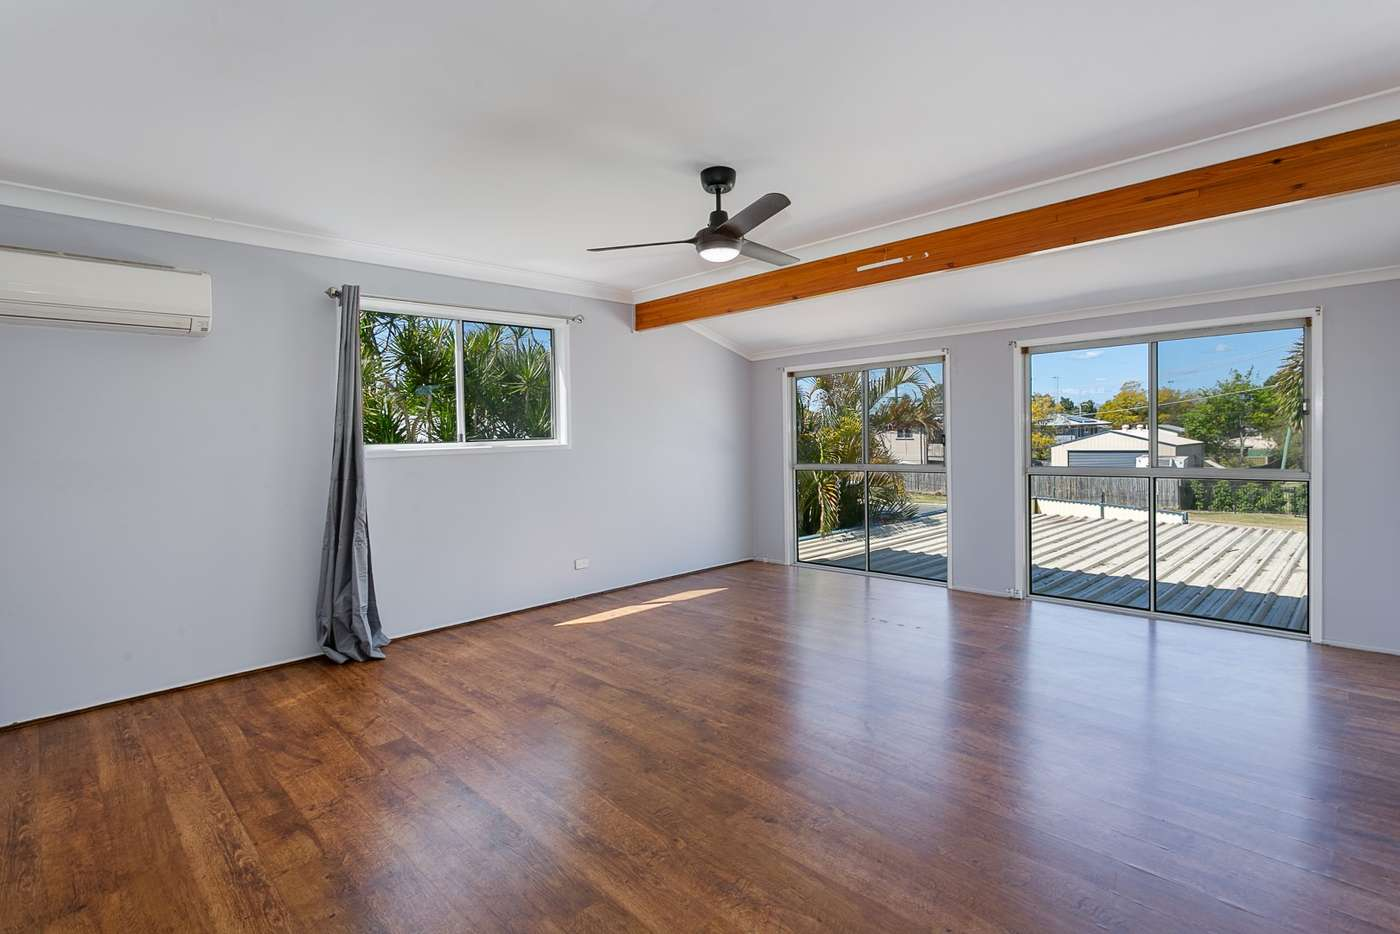 Sixth view of Homely house listing, 1 Madden Street, Silkstone QLD 4304